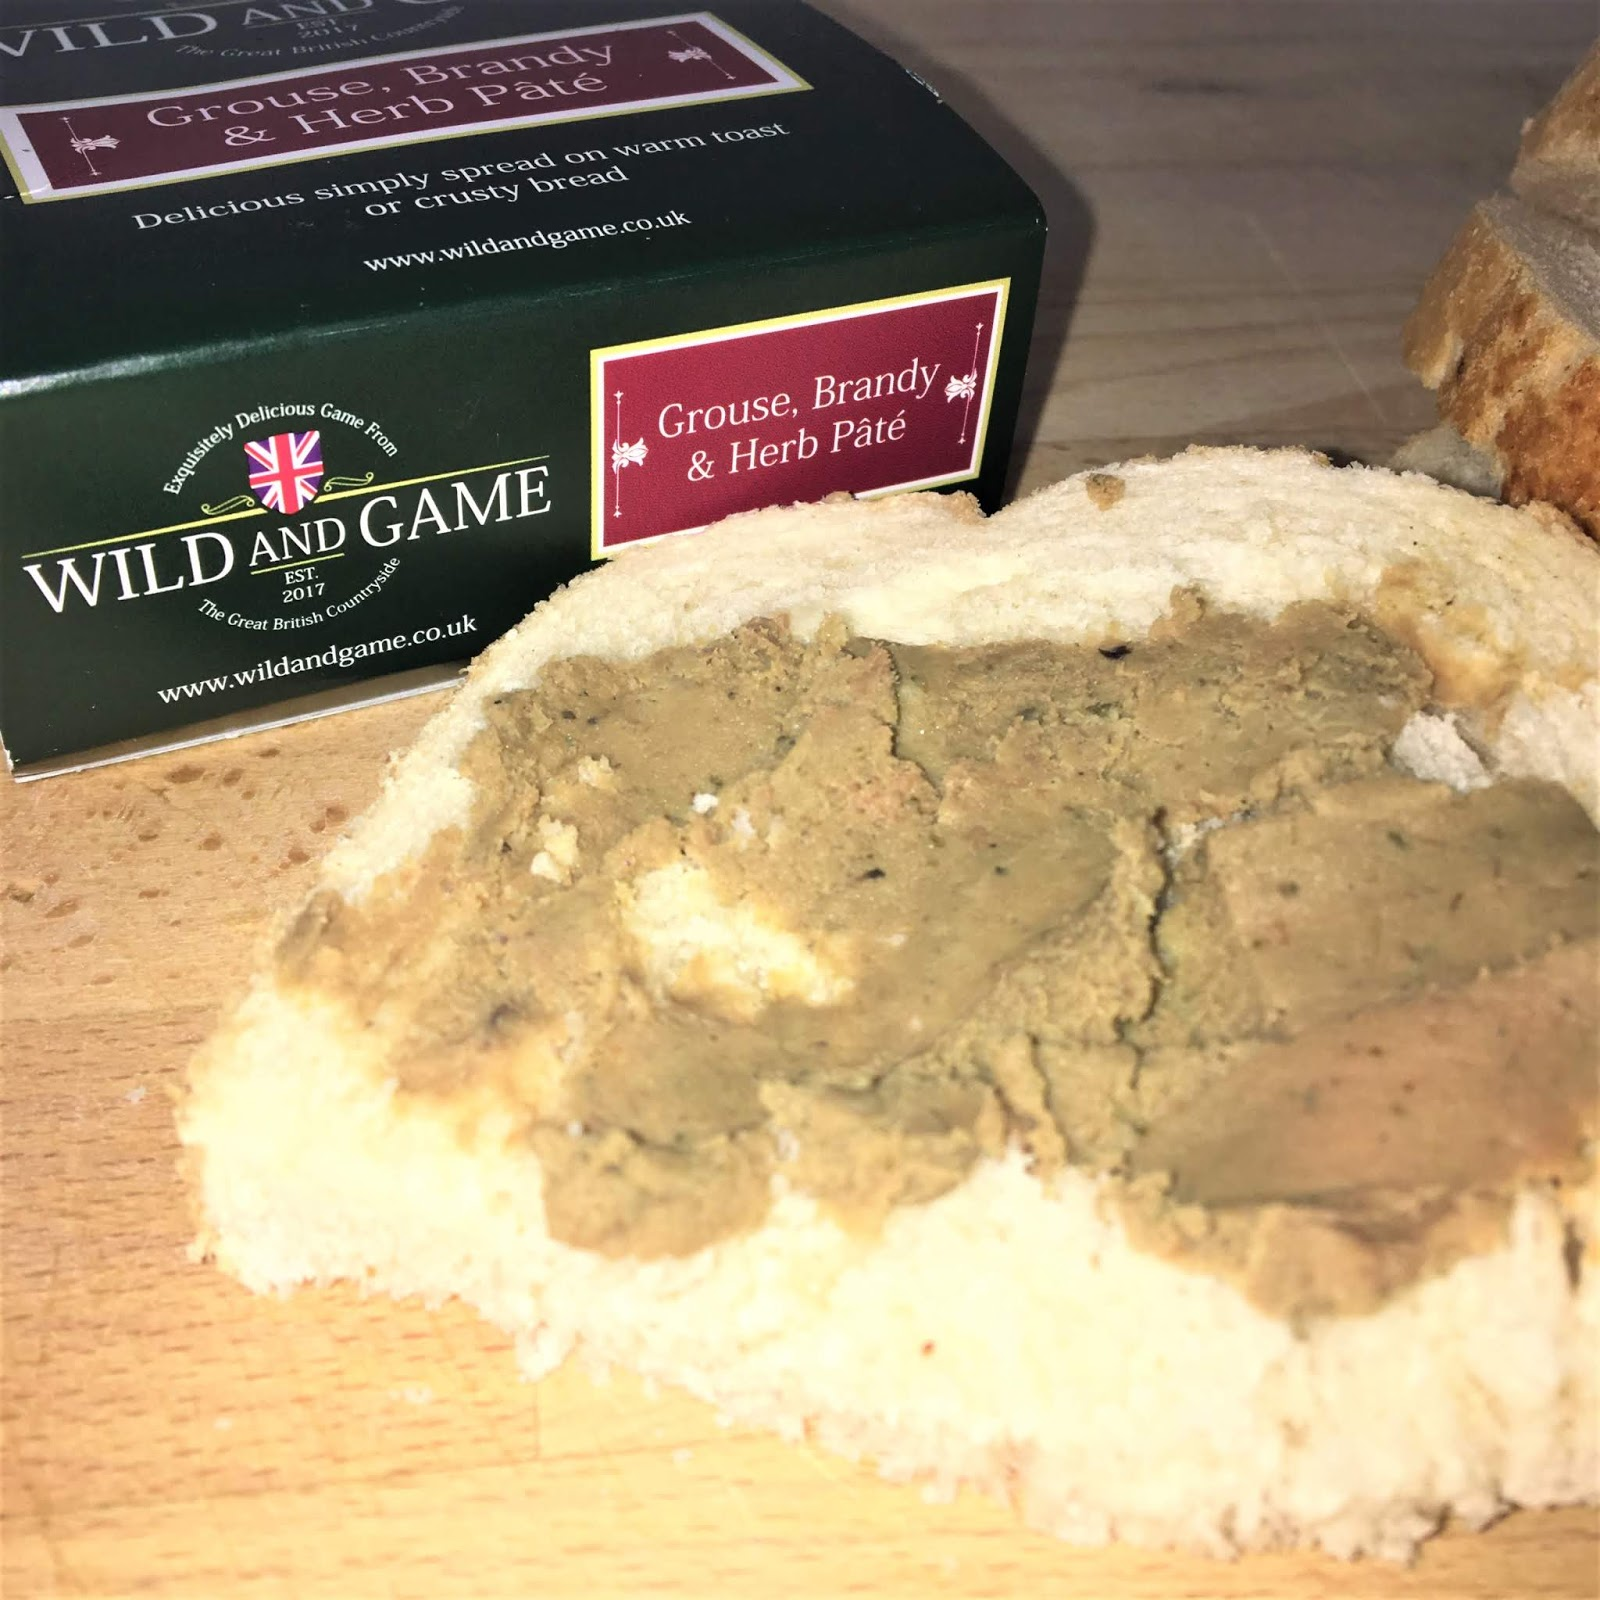 Grouse, Brandy & Herb Pâté